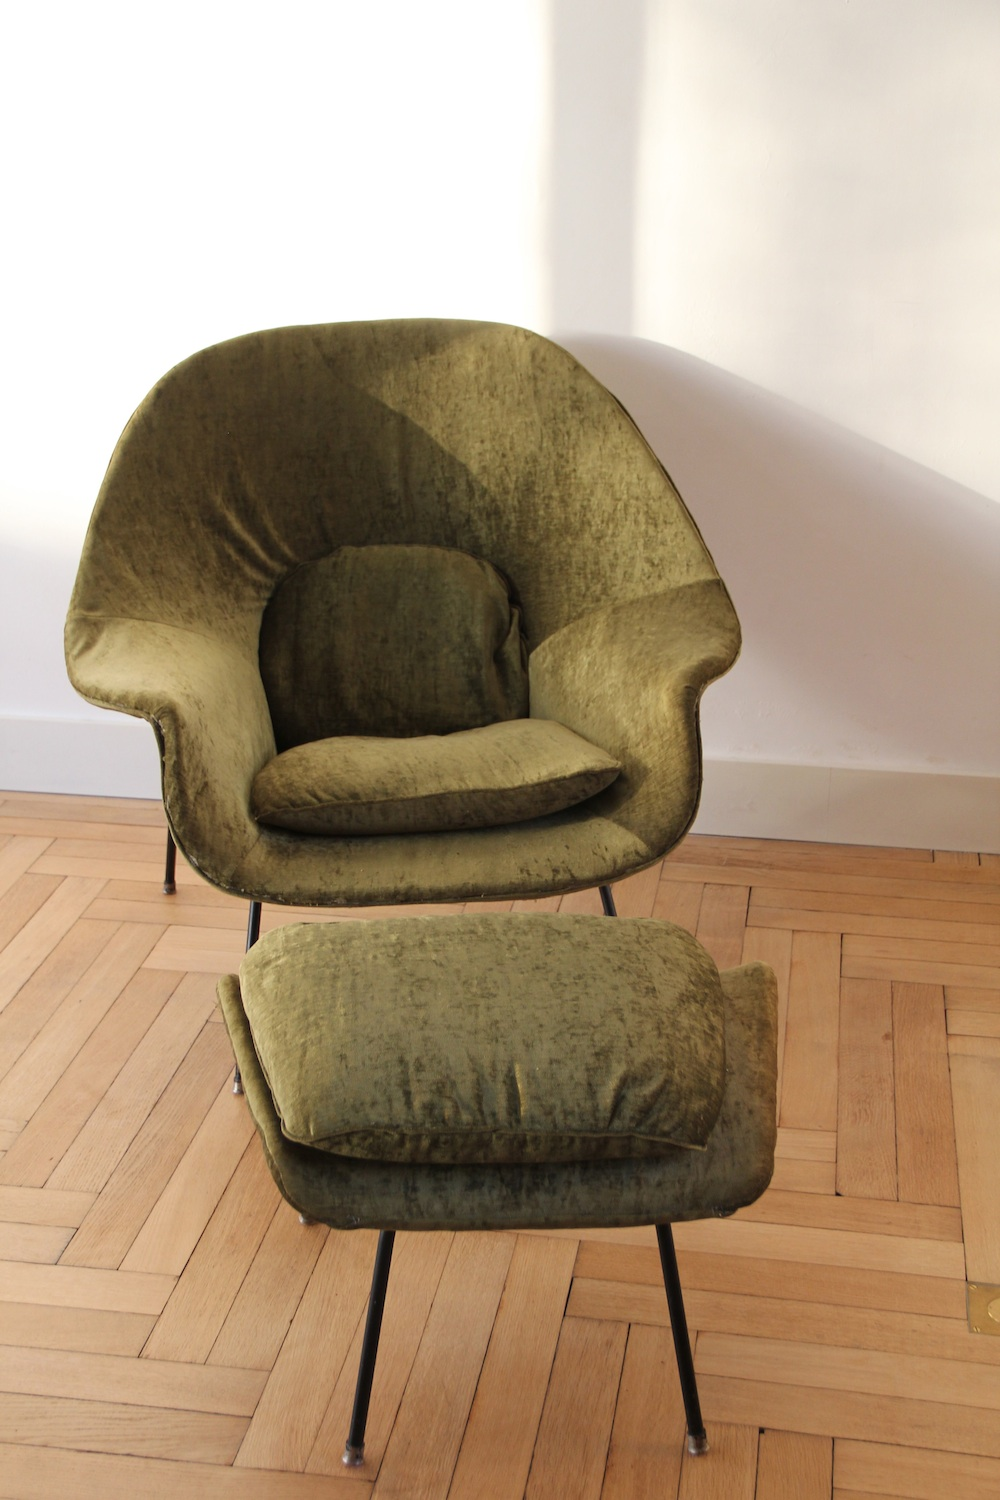 Vintage Saarinen Womb chair for Knoll